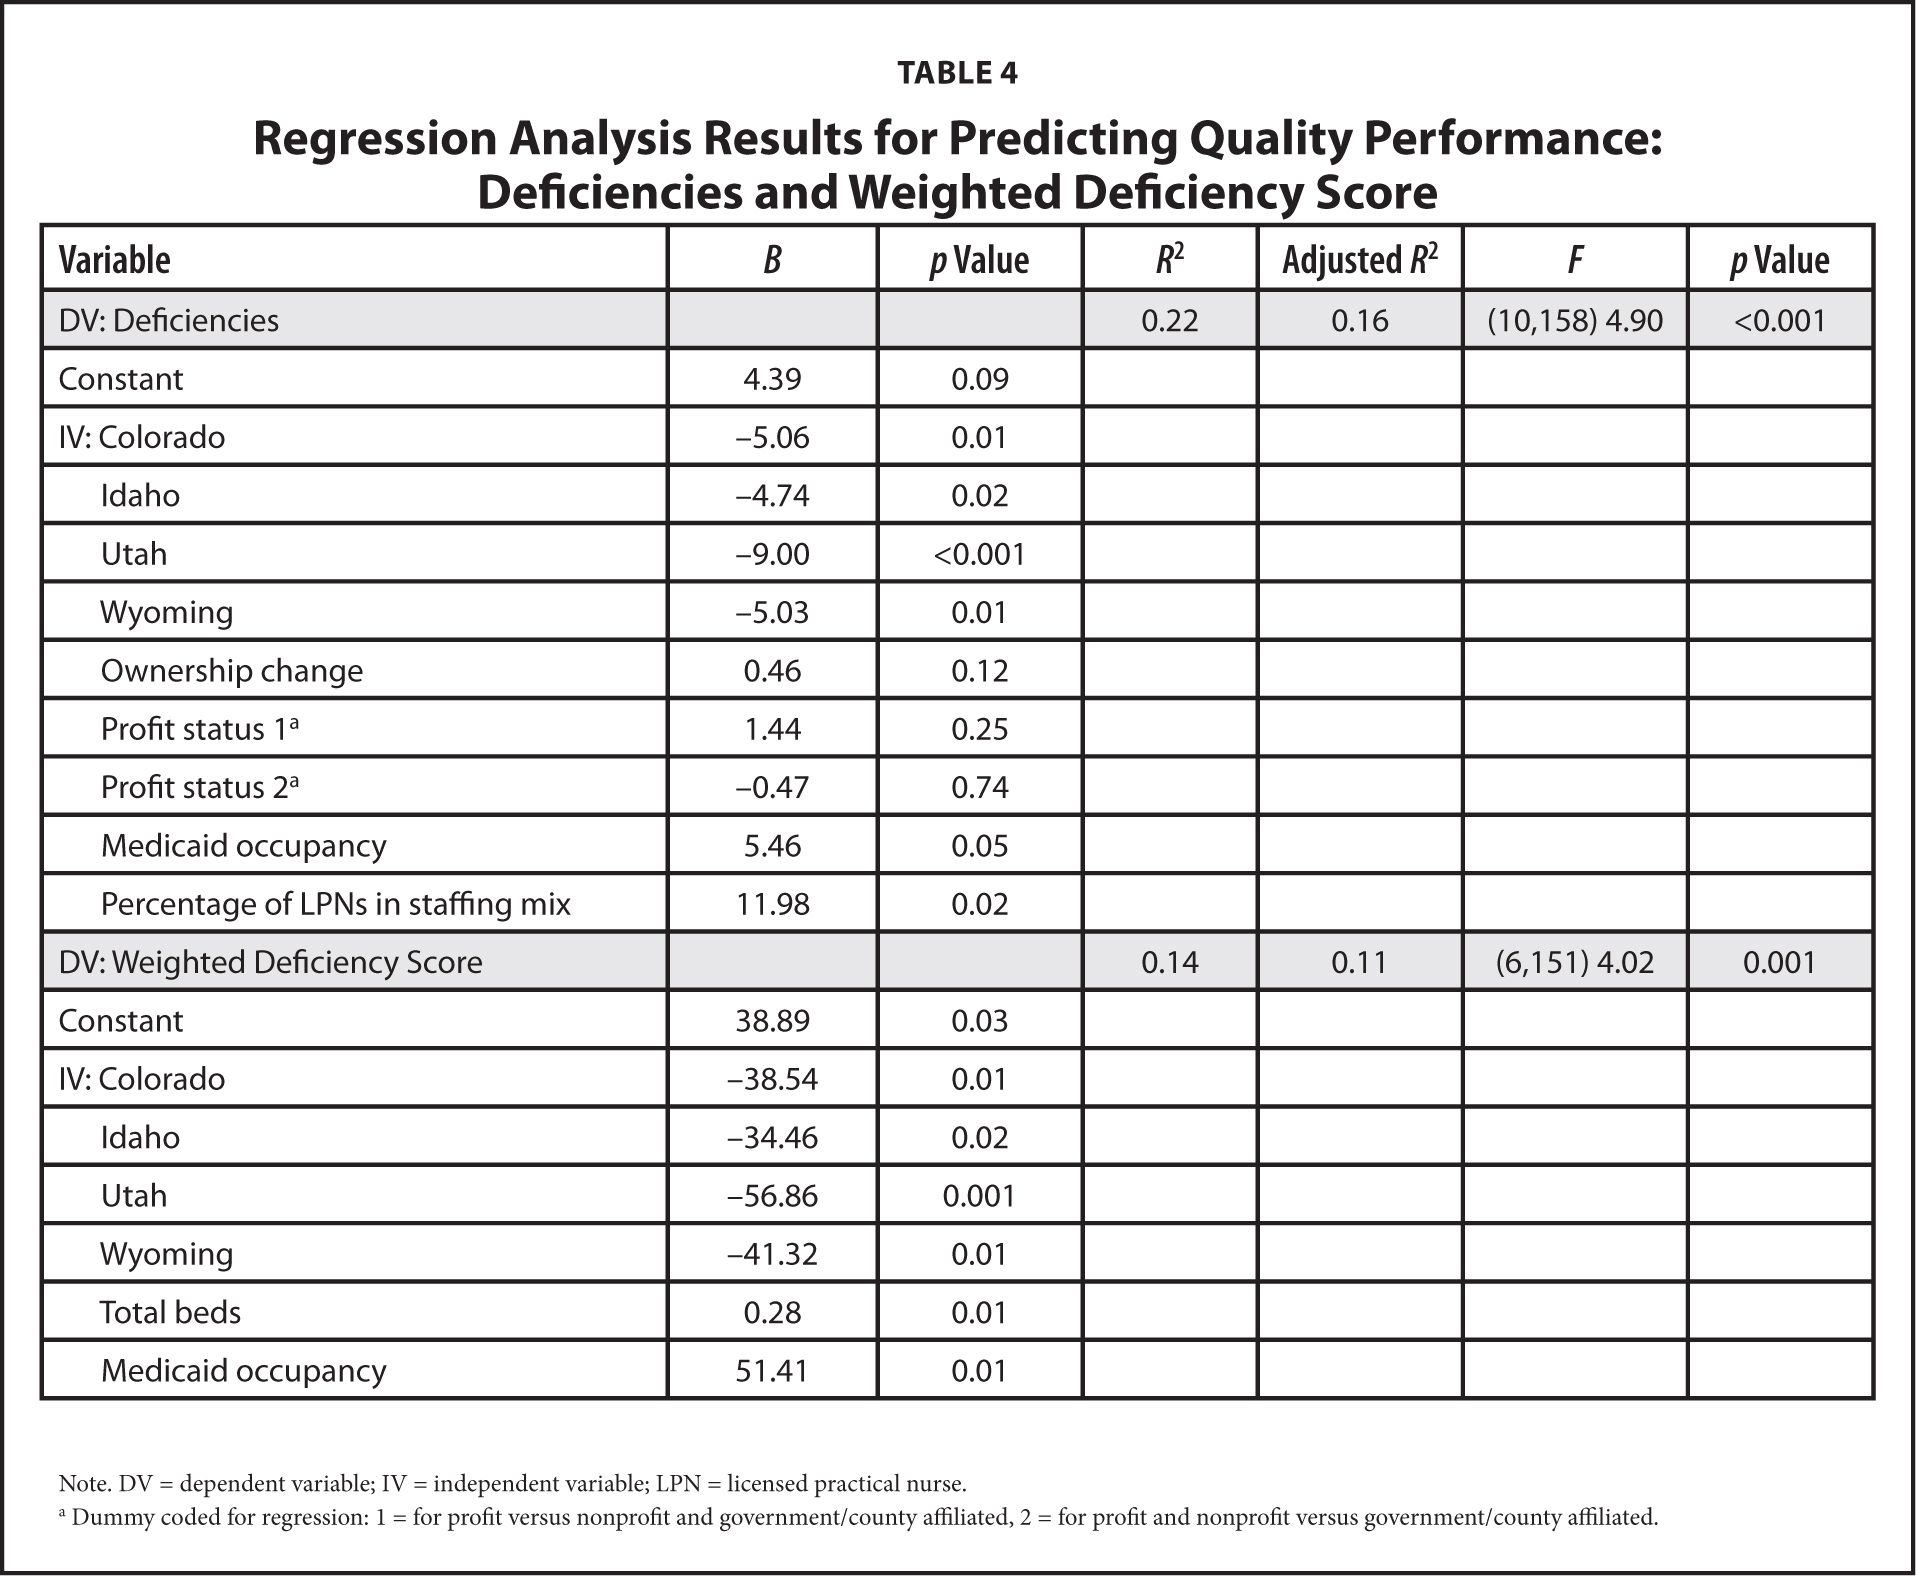 Regression Analysis Results for Predicting Quality Performance: Deficiencies and Weighted Deficiency Score